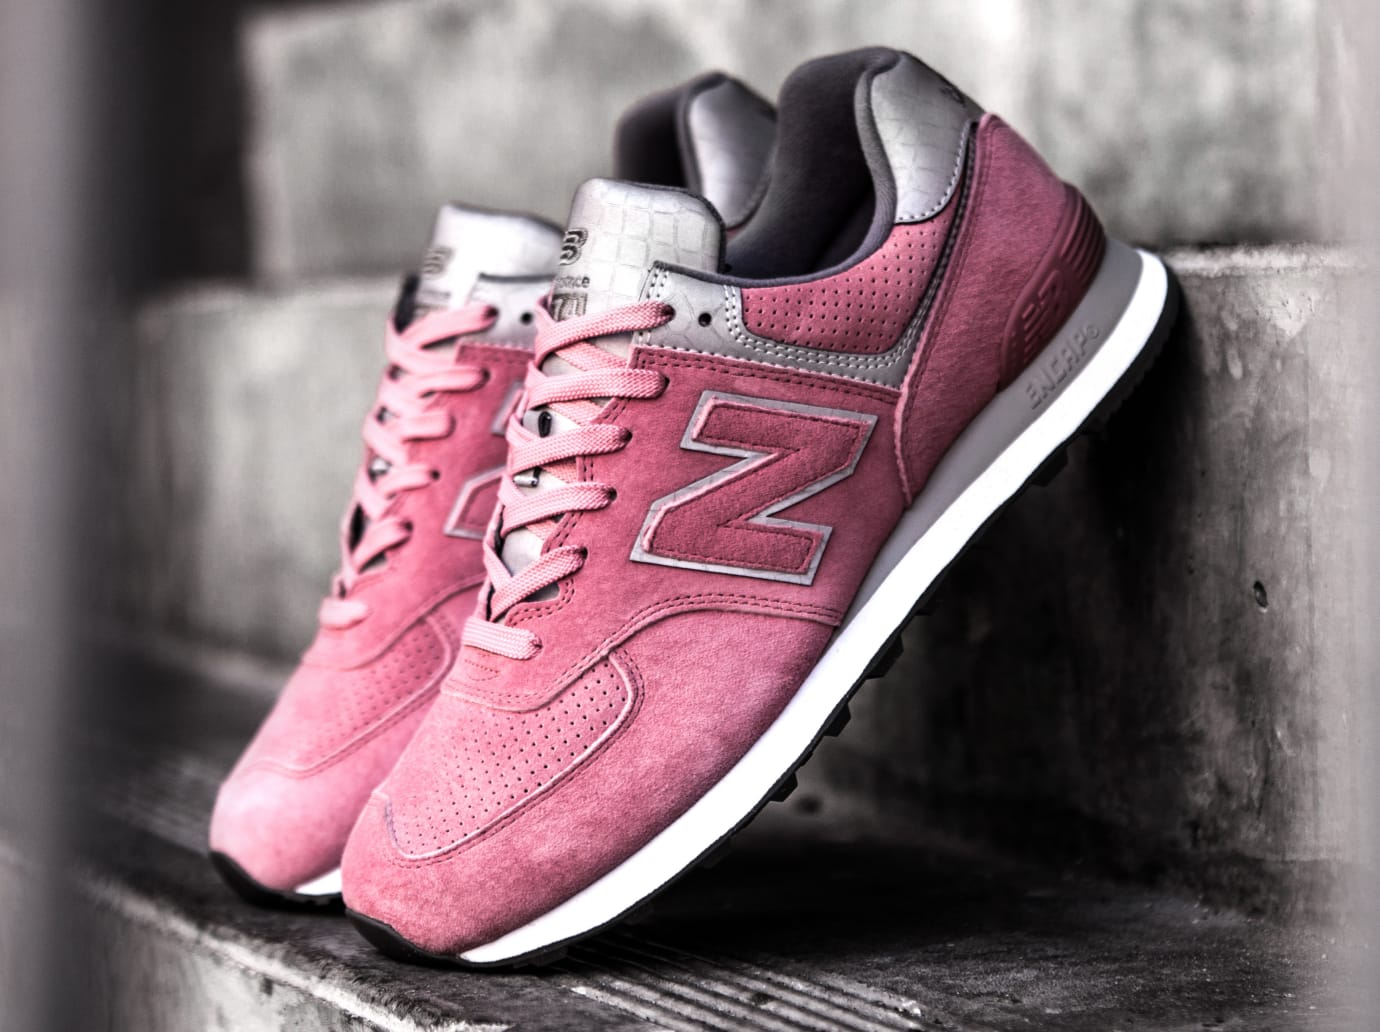 New Balance 574 Iconic Collaborations 'Concepts'